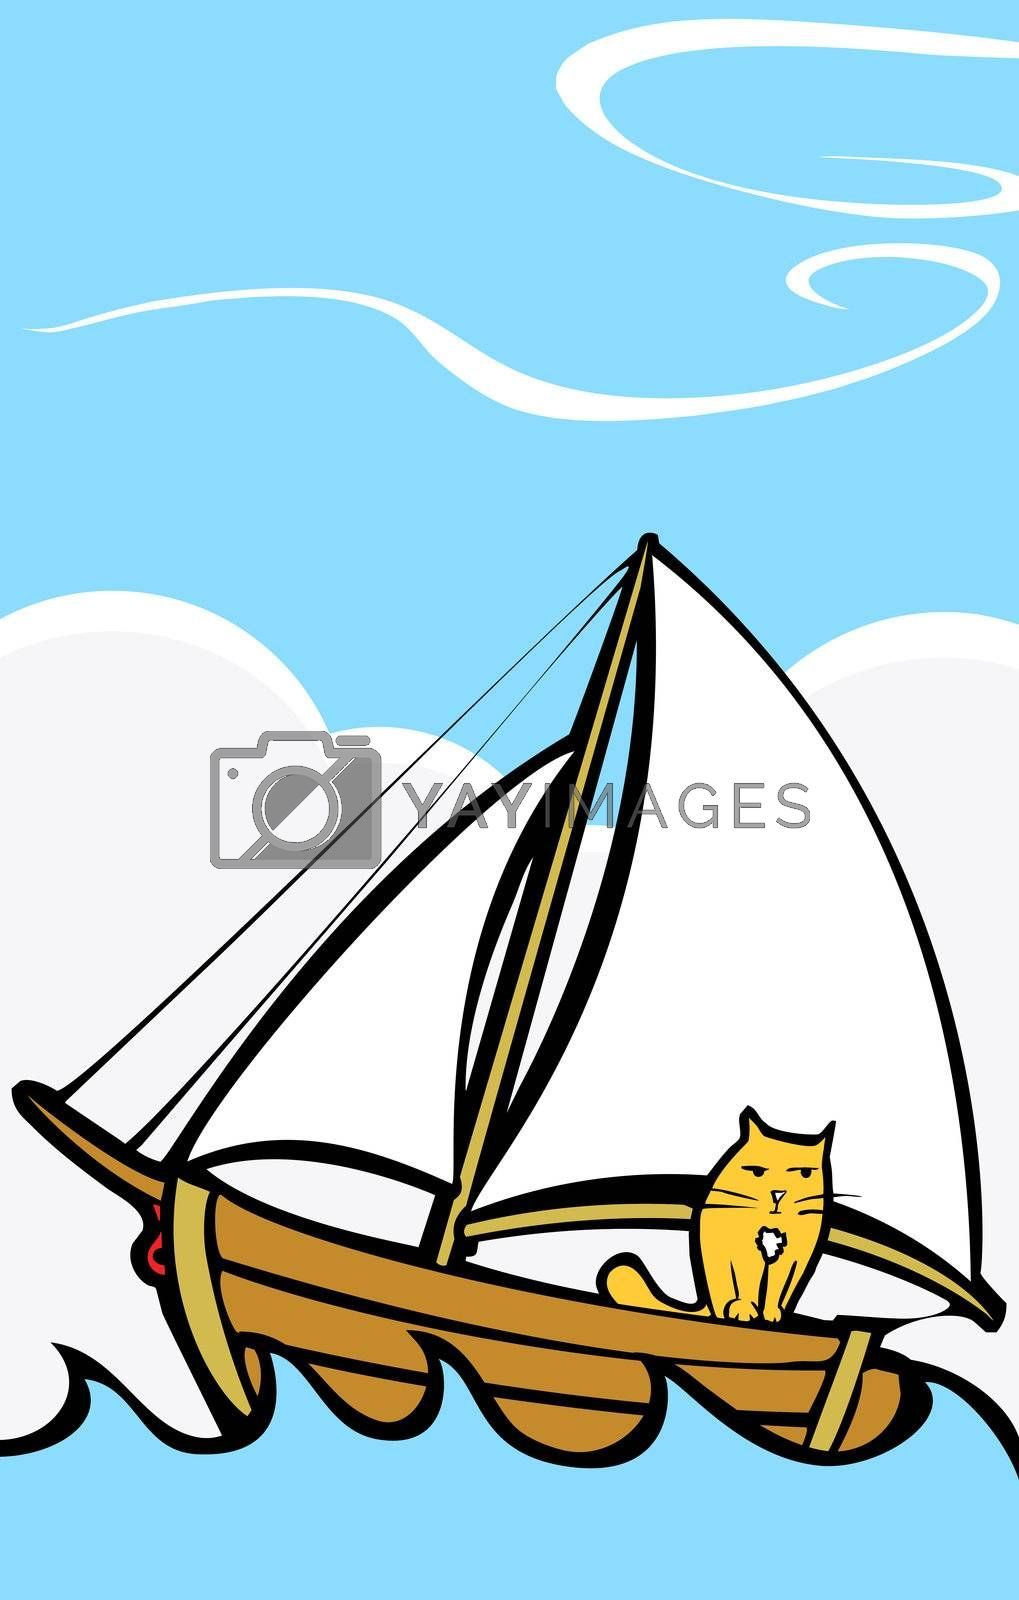 Orange cat taking a trip on a boat at sea.